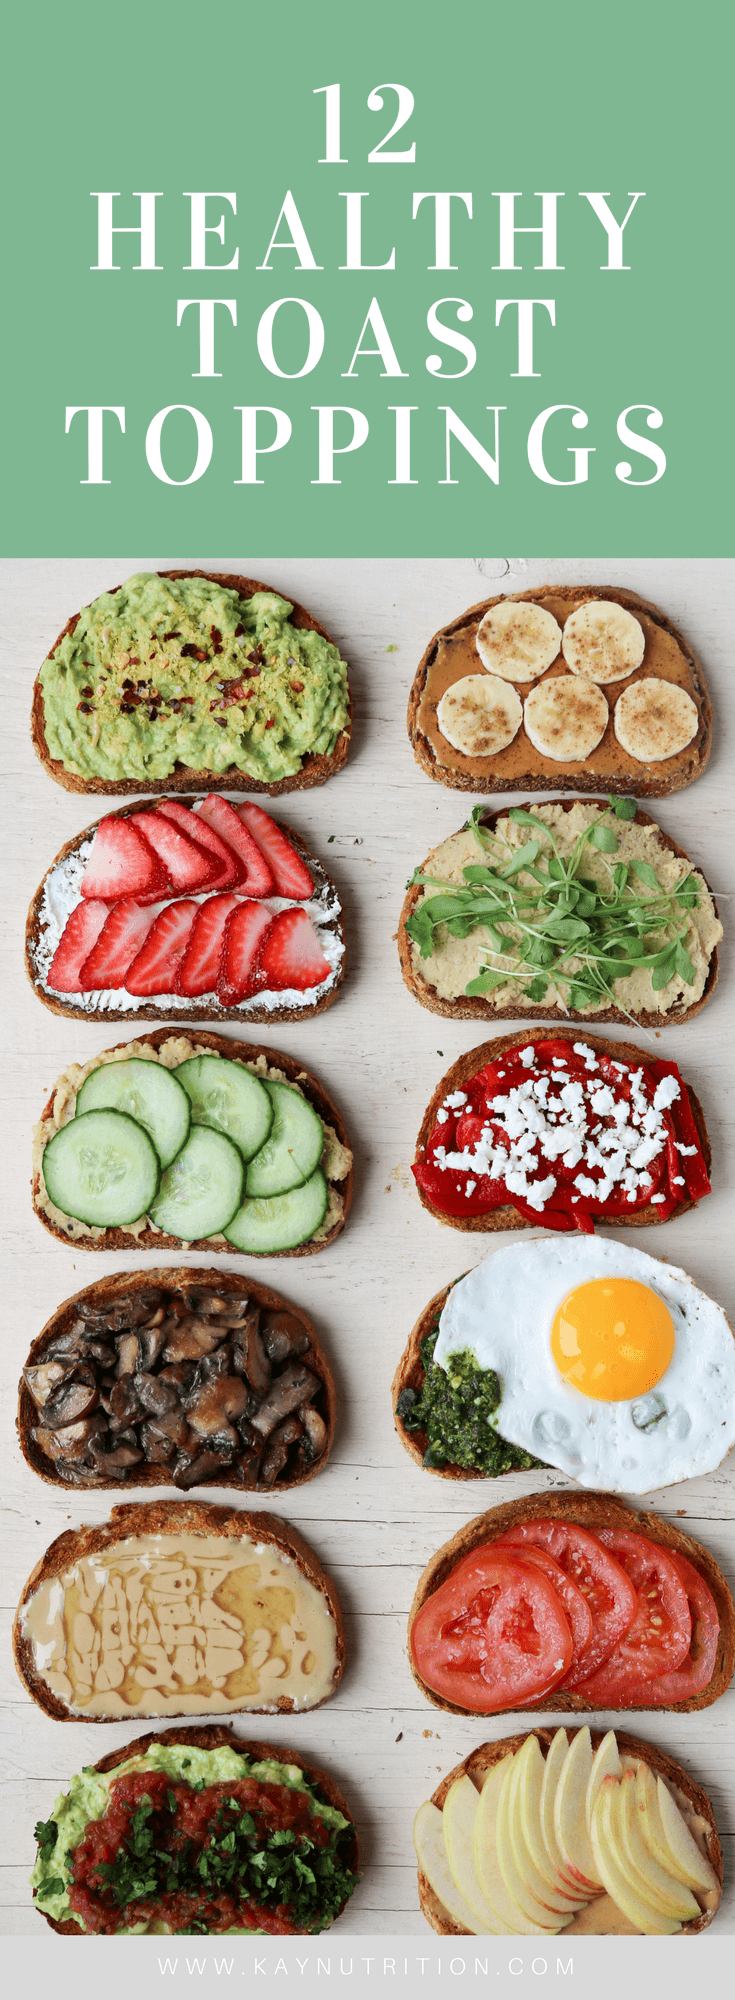 12 Healthy Toast Toppings